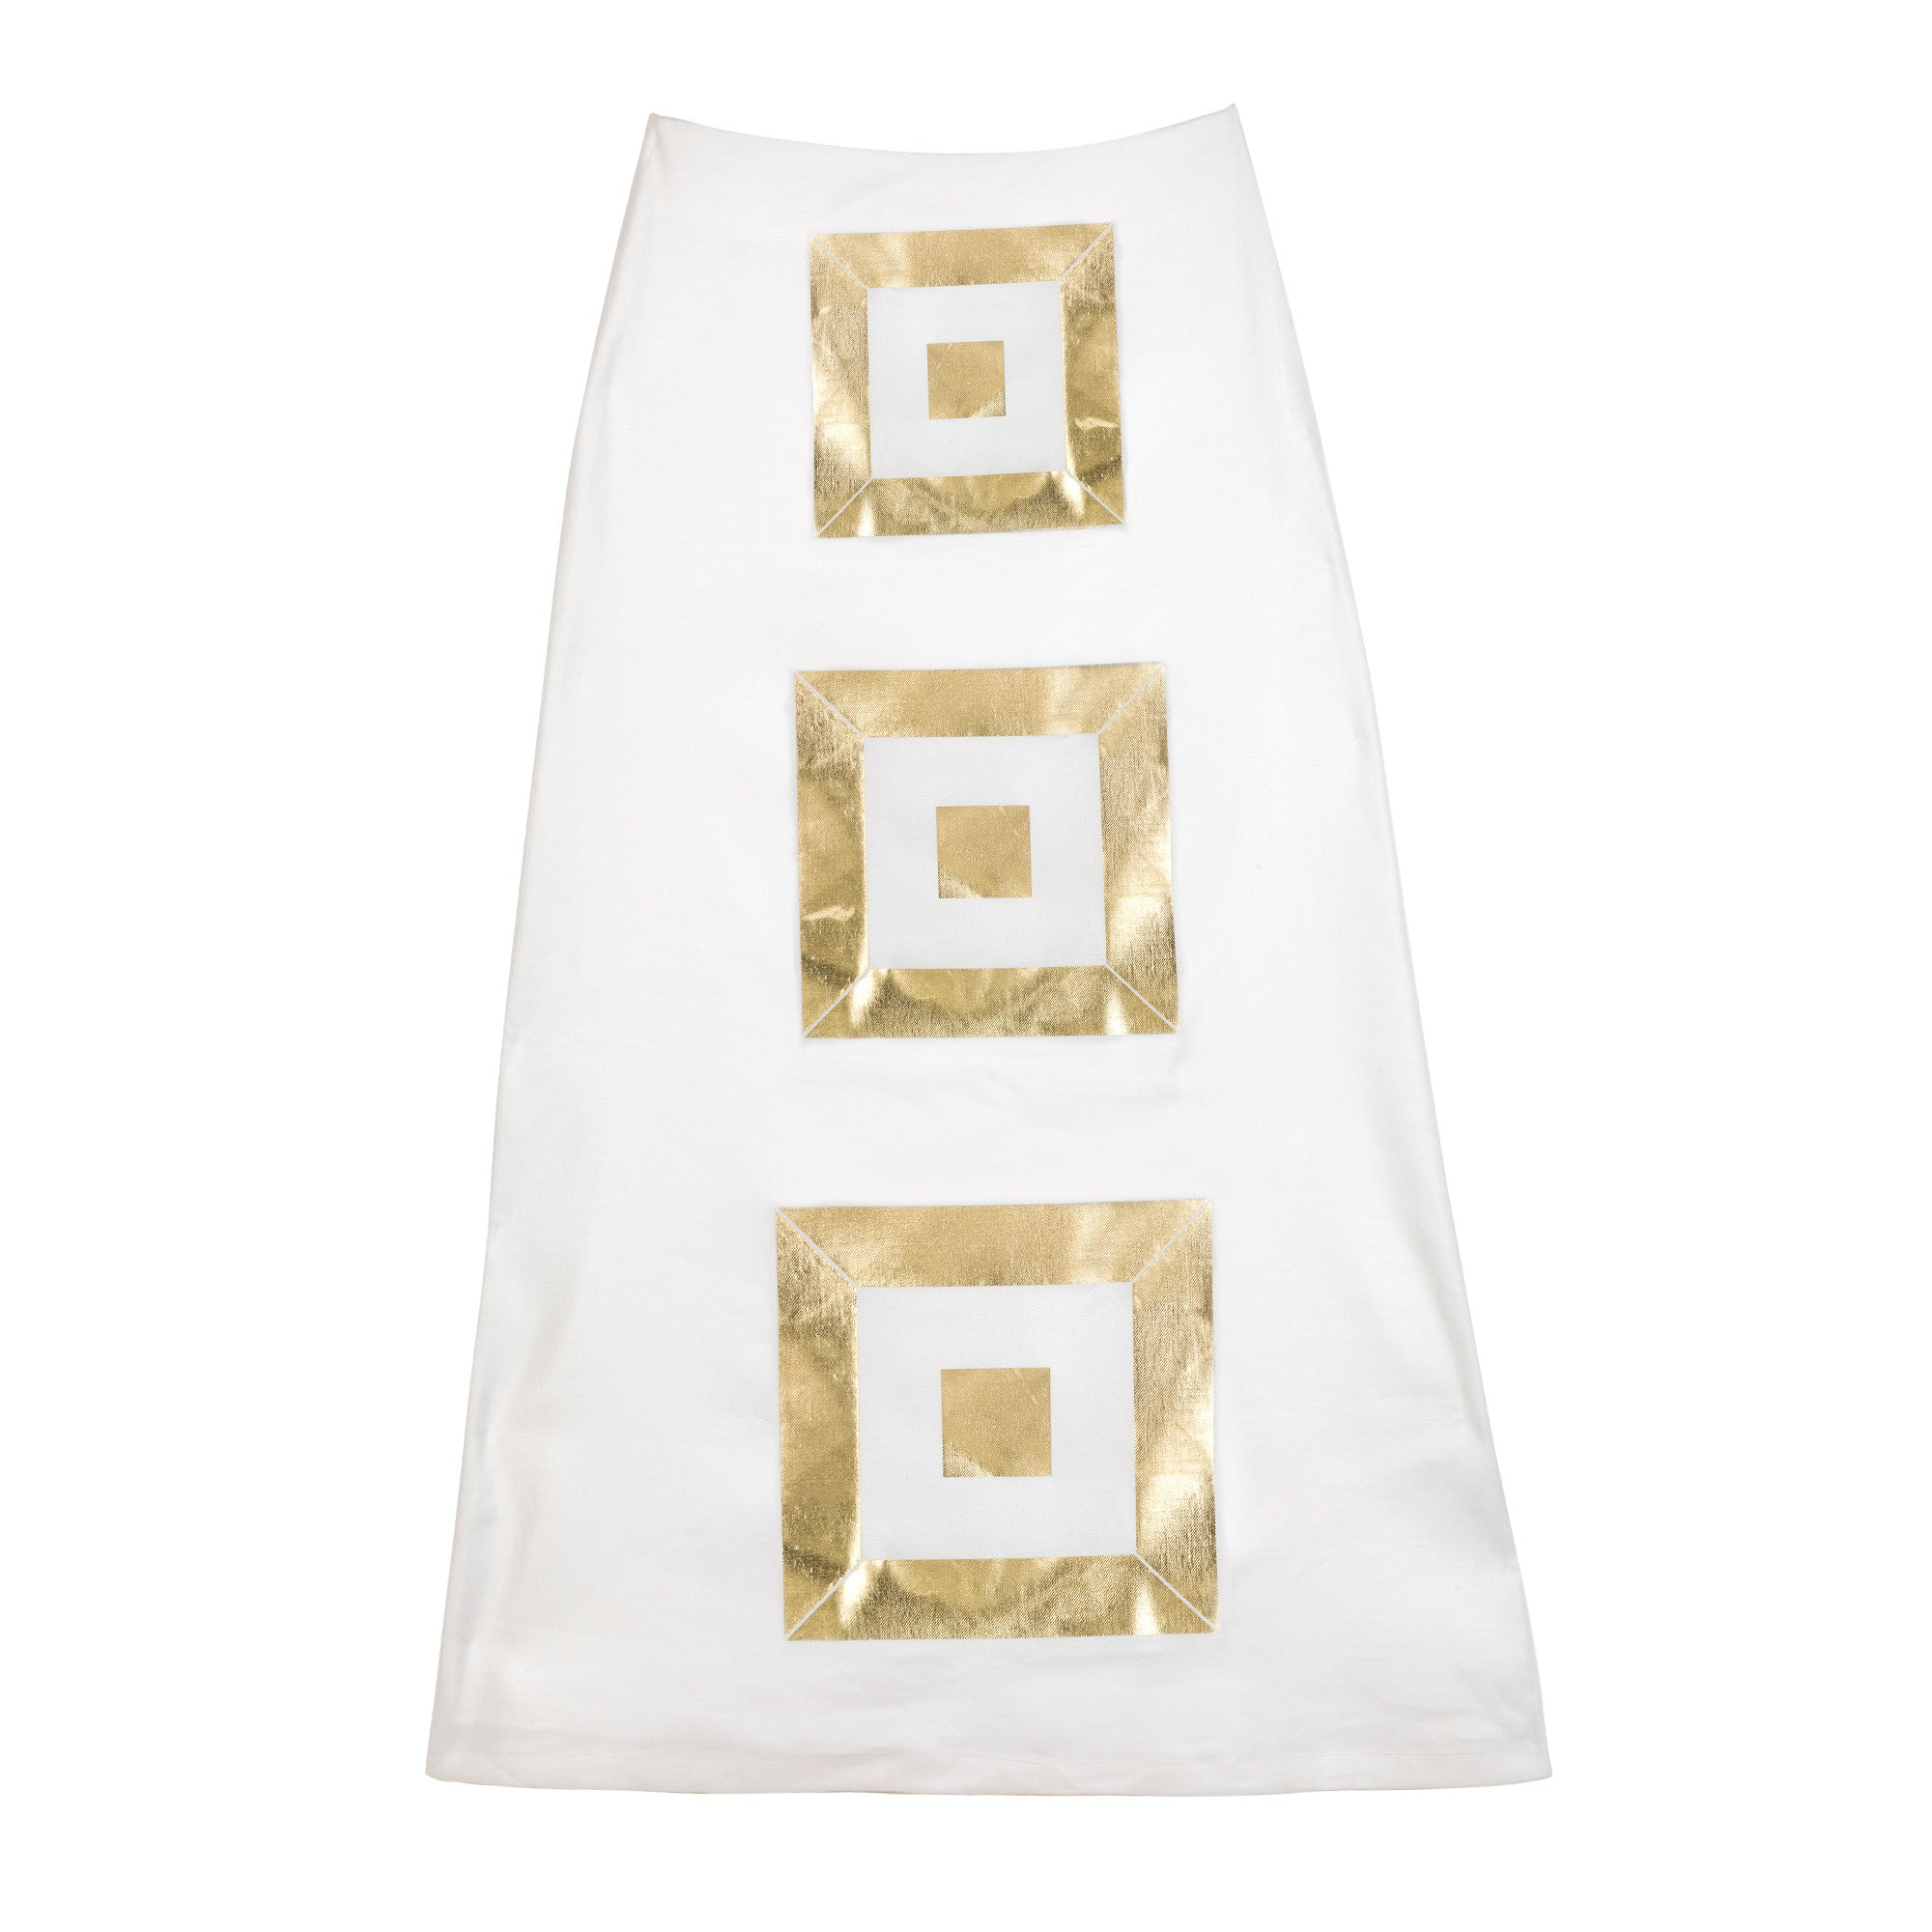 The Infinity Gold Pyramid Skirt